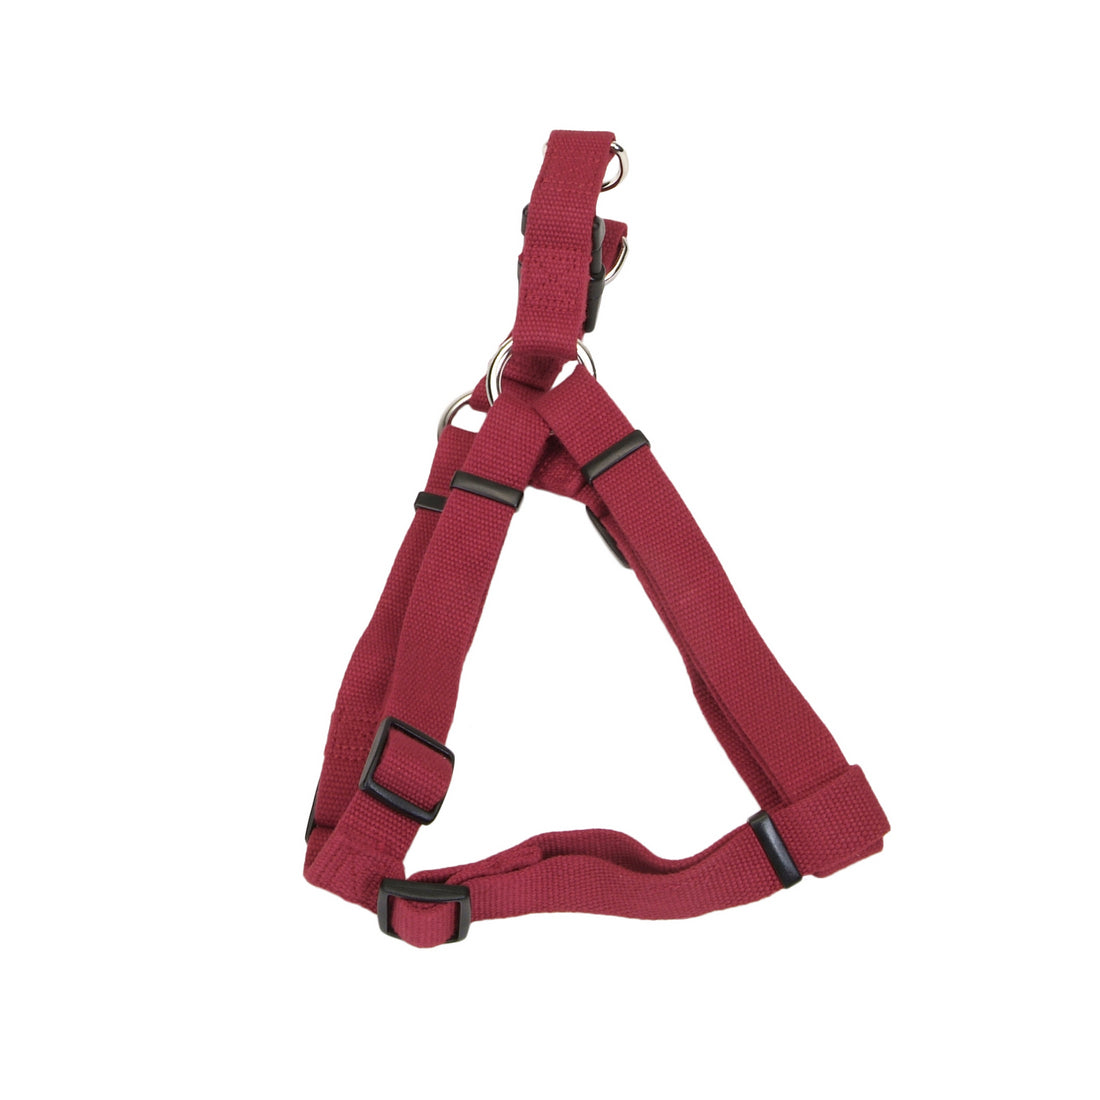 "Coastal Soy Comfort Wrap Adjustable Harness 26-38"" Cranberry"